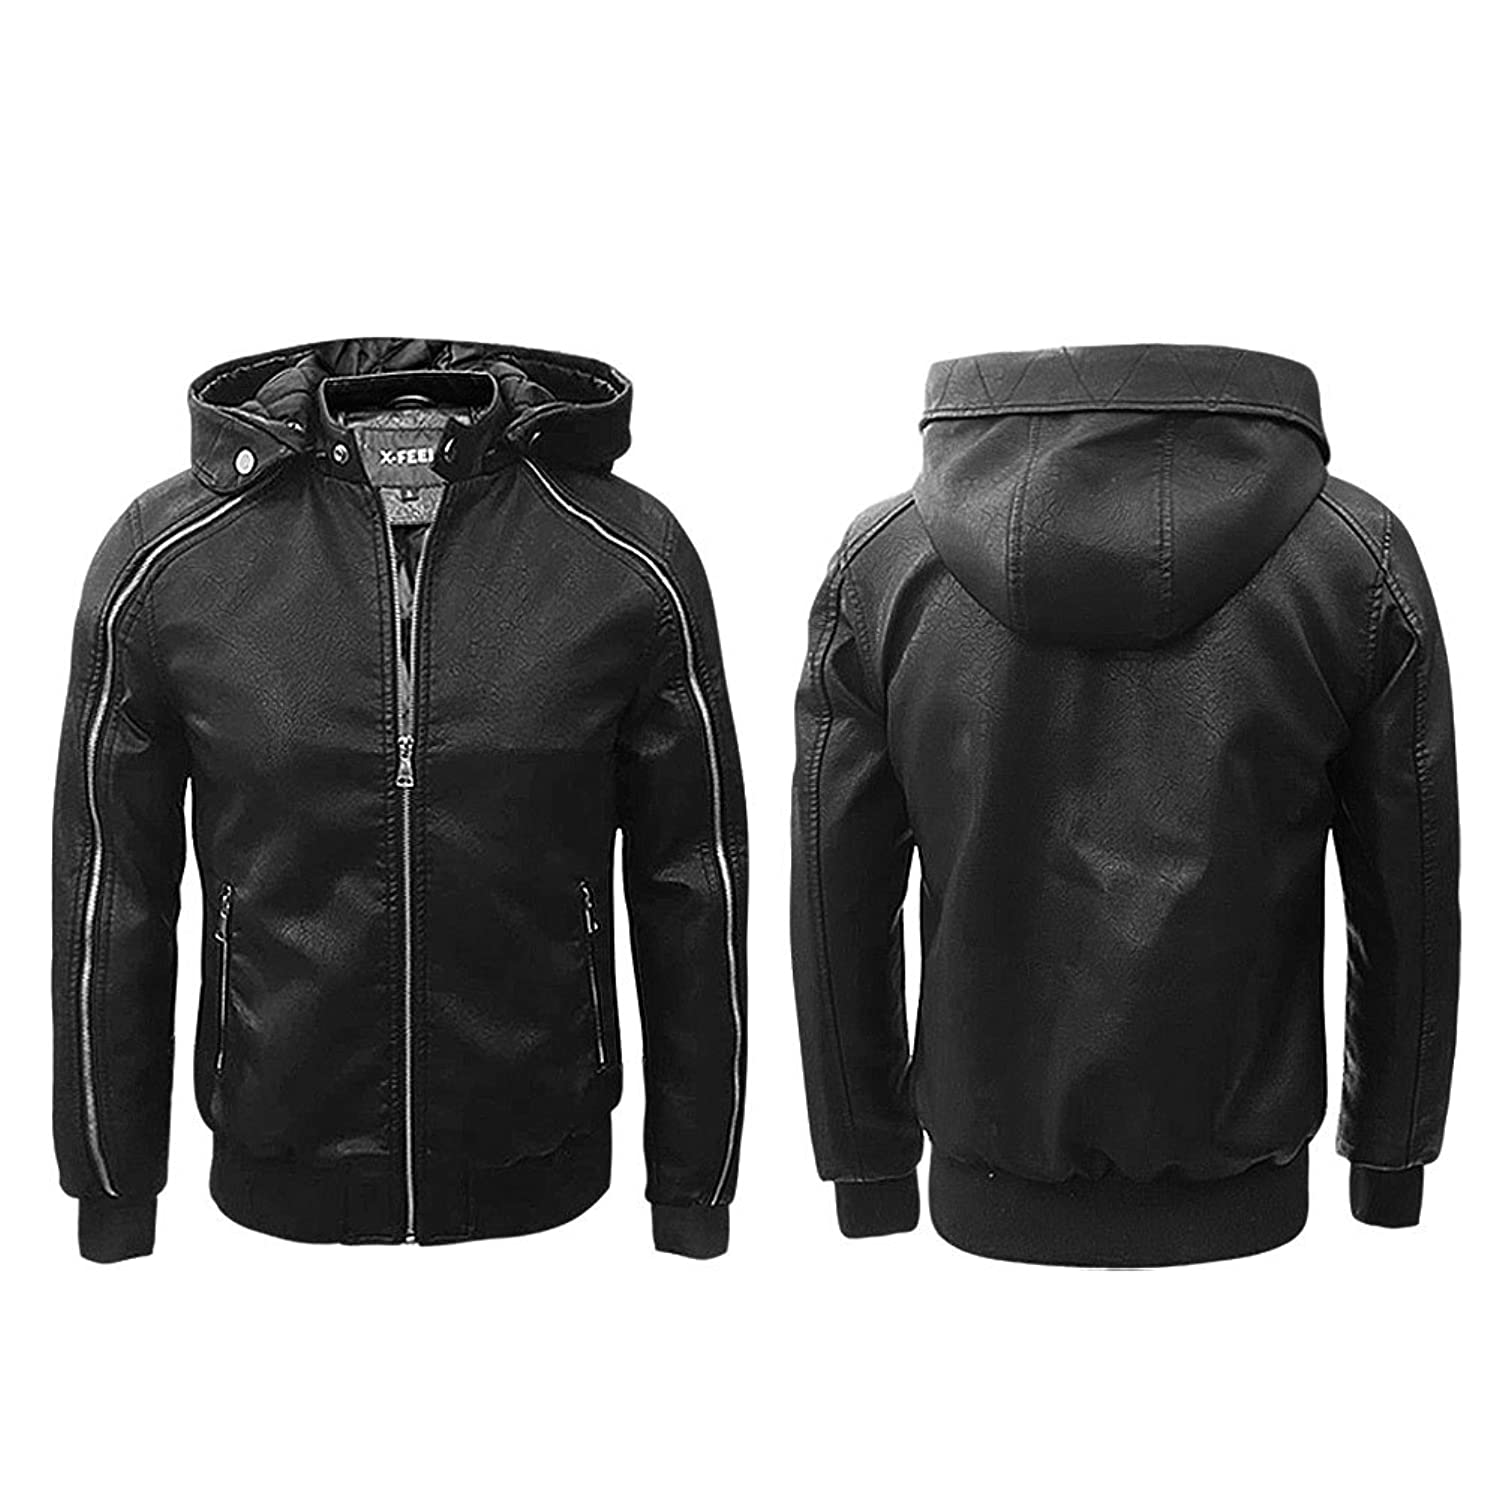 X-Feel Men's Parka Jacket black black